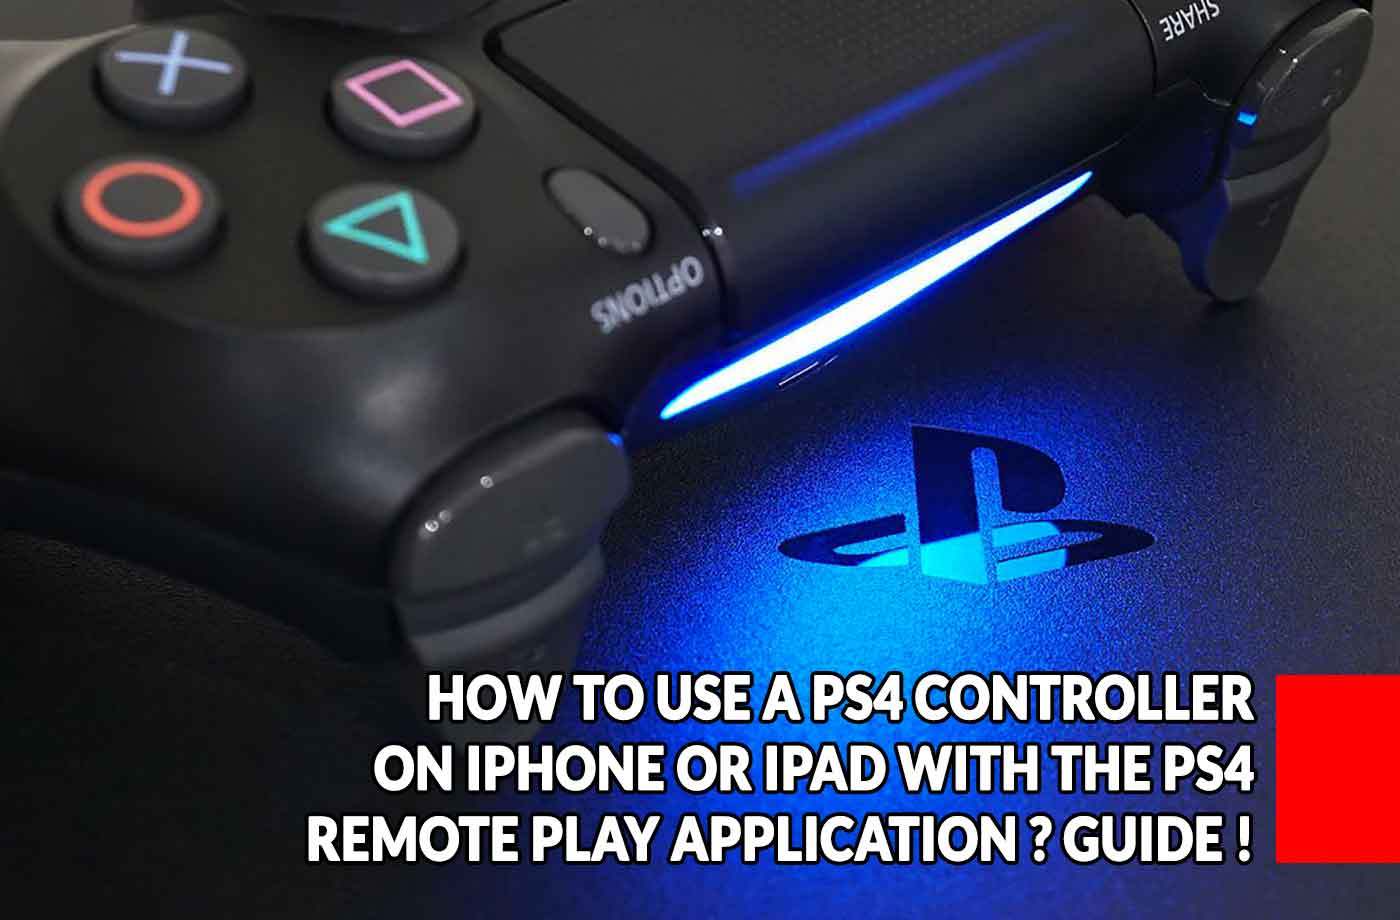 bc677ec3b How to use a Dualshock 4 controller on iOS (iPhone or iPad) with the PS4  Remote Play application